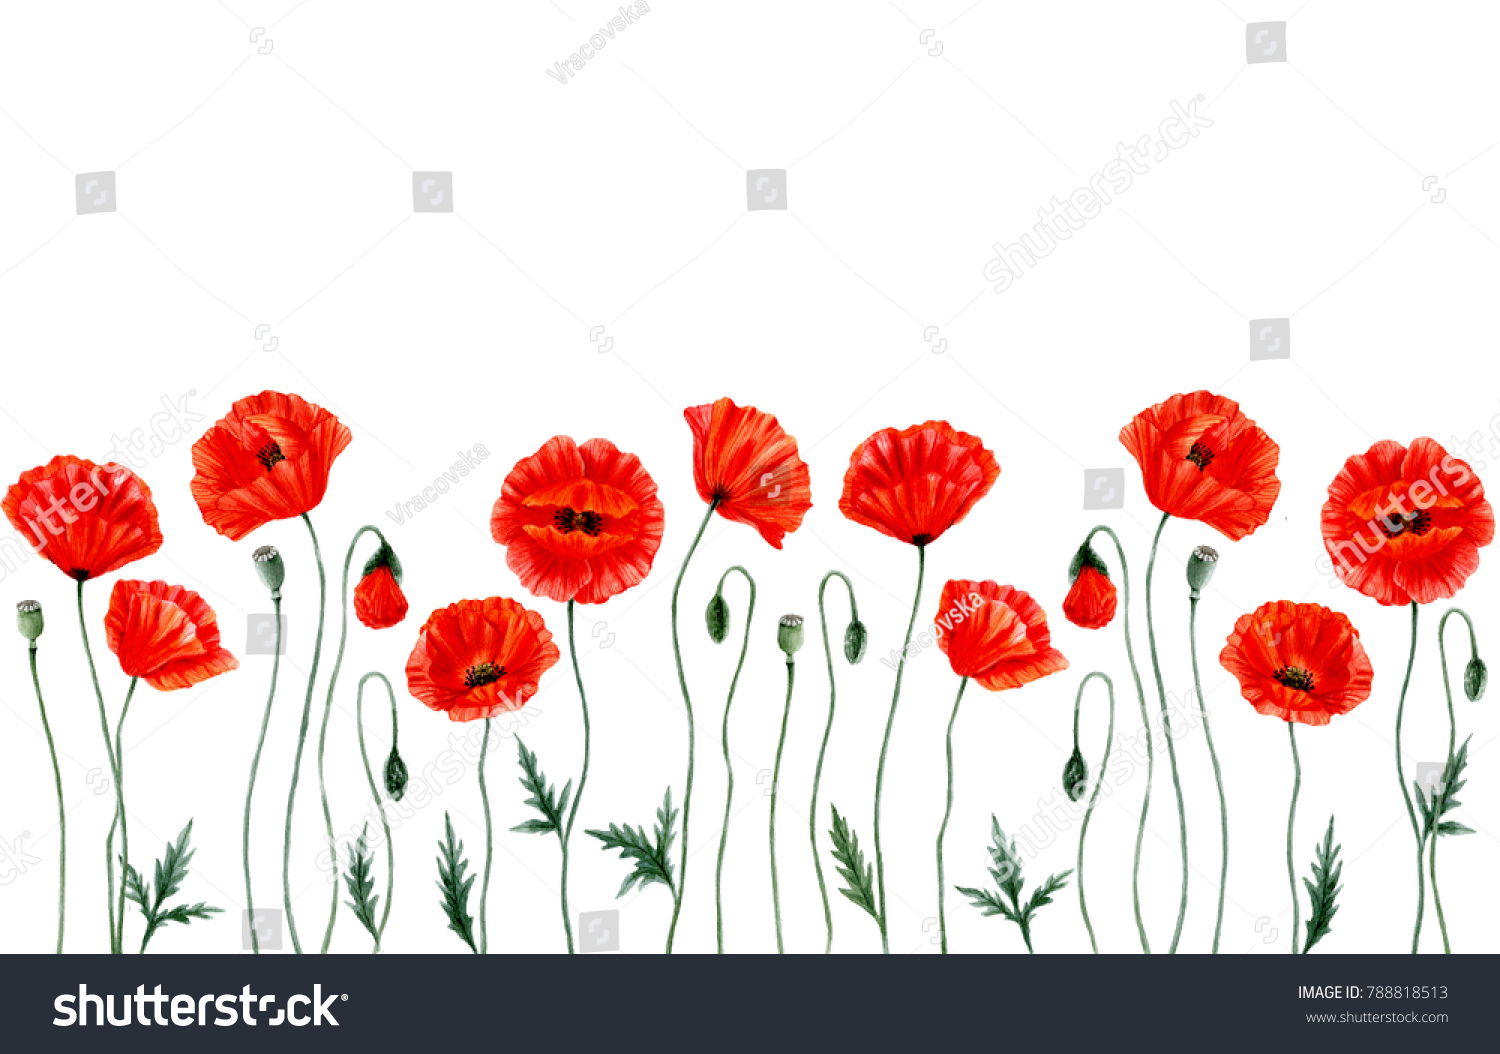 Watercolor Botanical Illustrations Red Poppy Flowers Stock ...